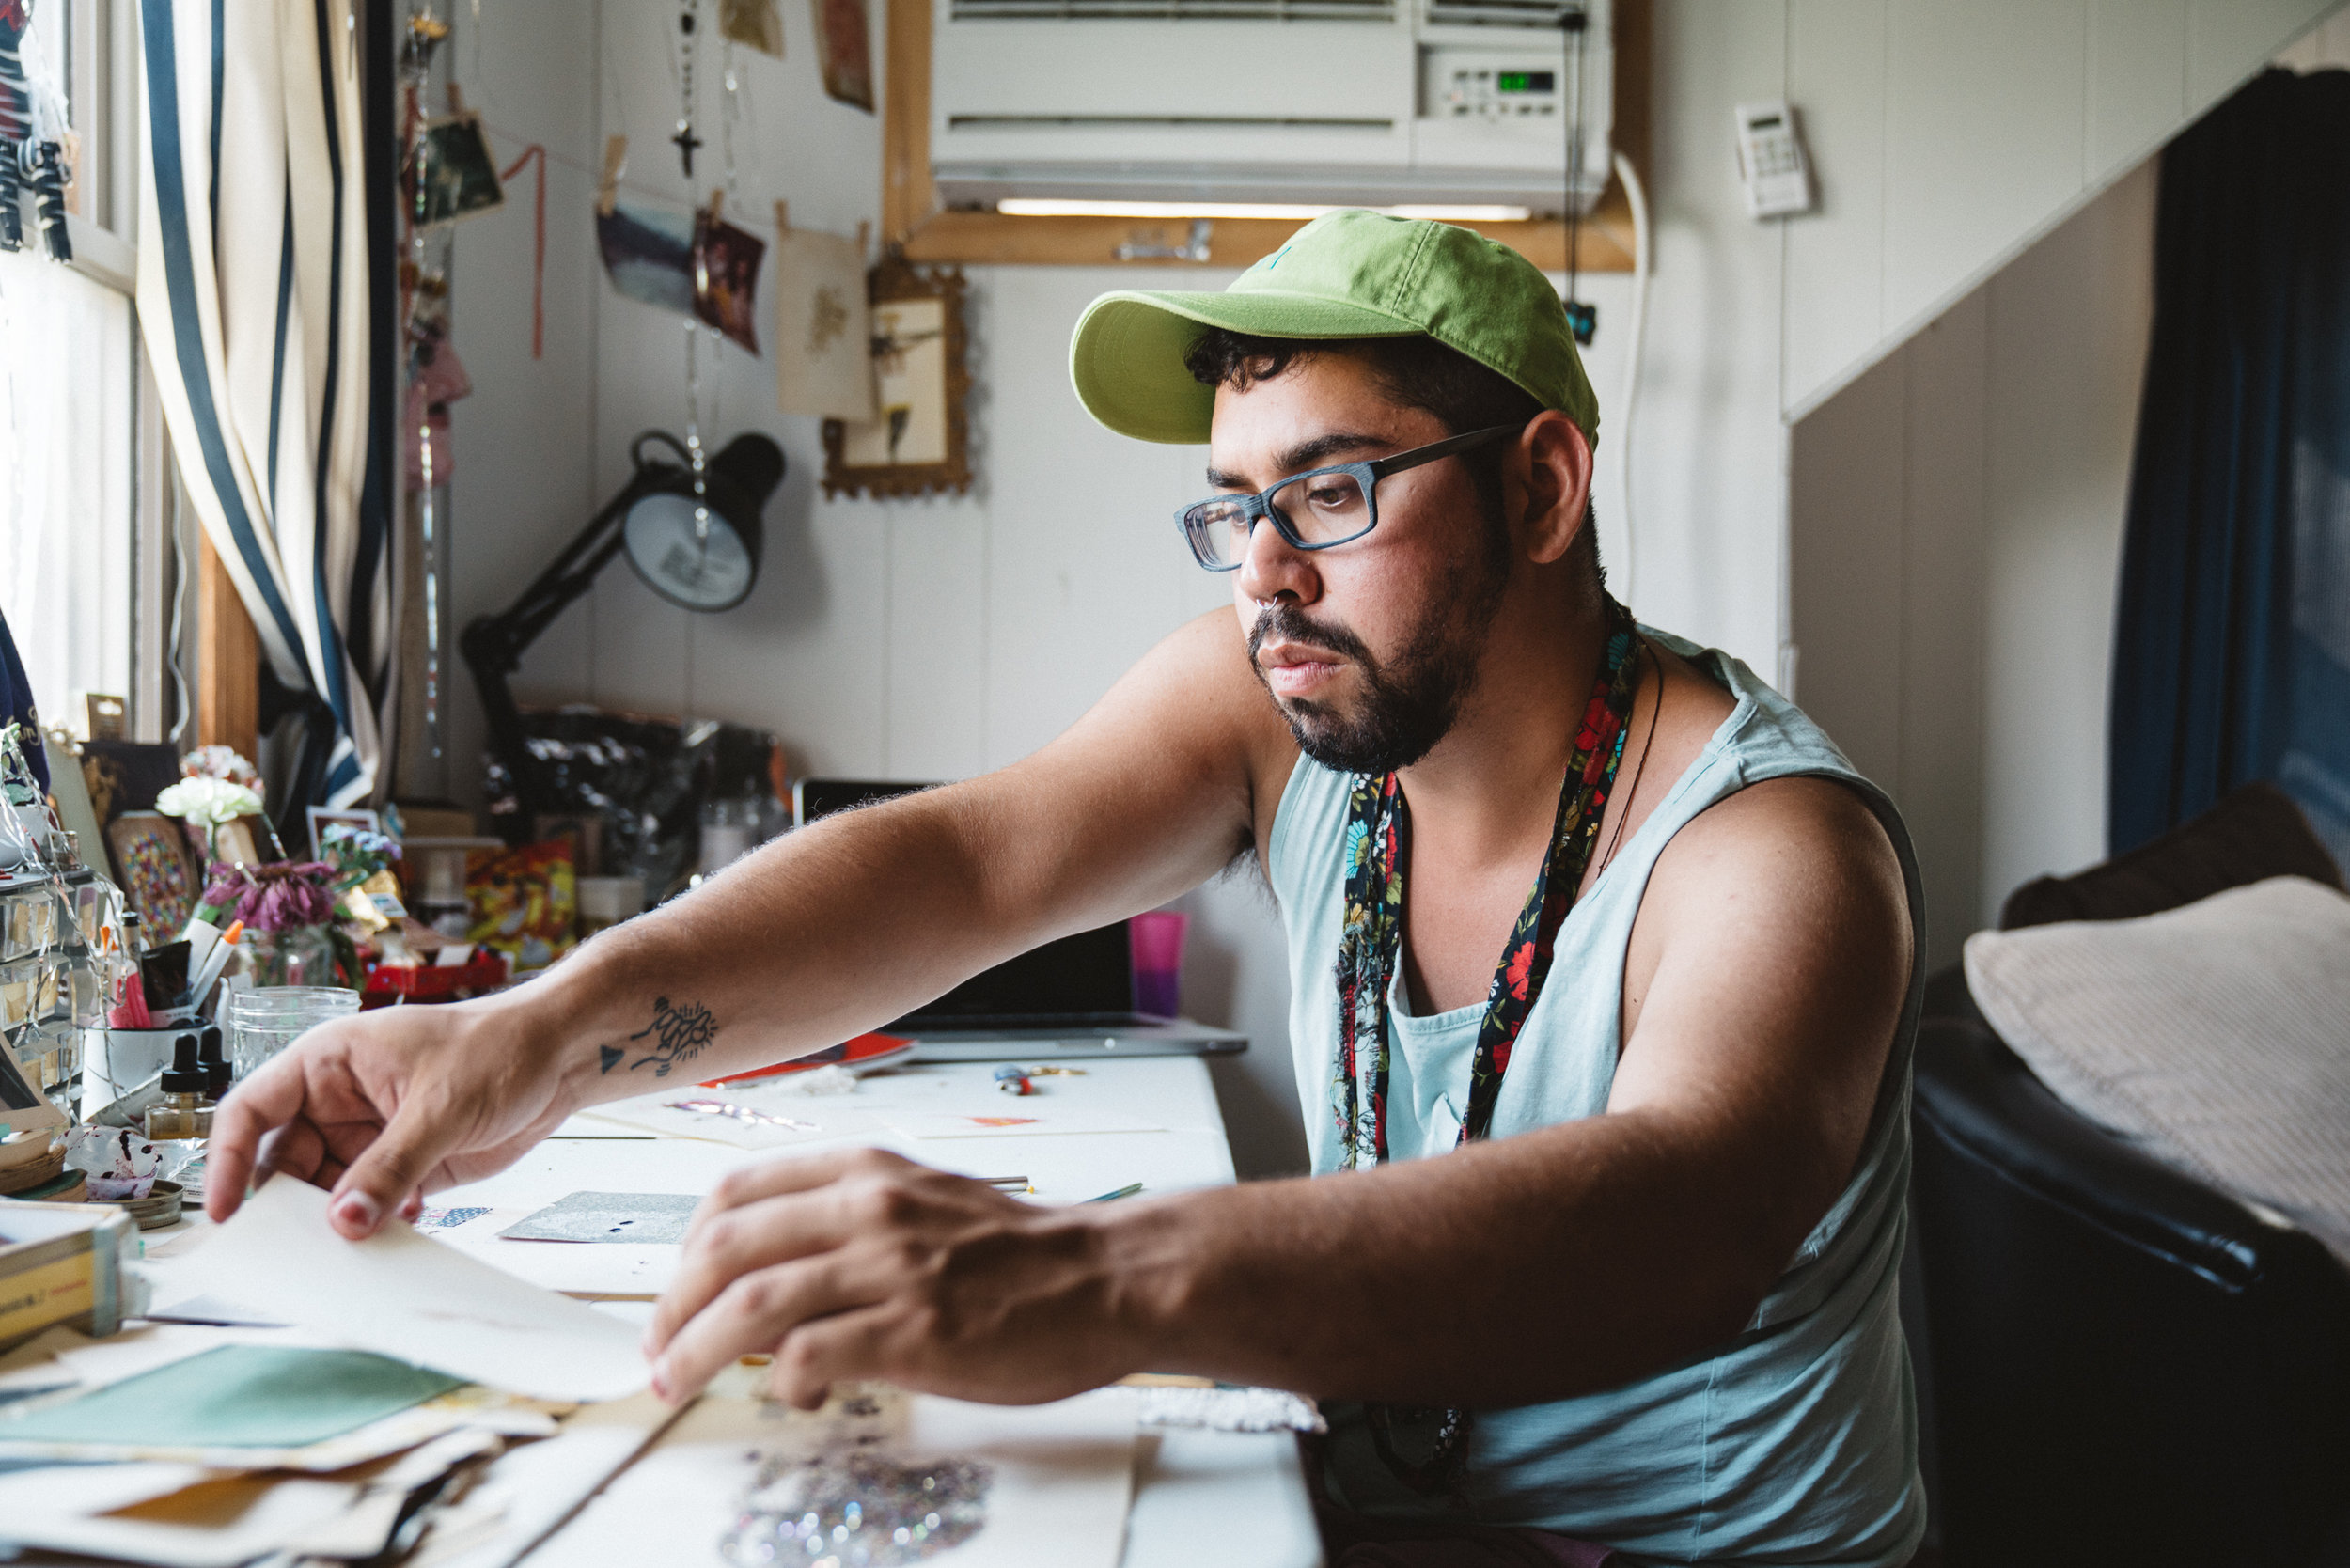 Rodolfo Marron (pictured) at the Fire Island Artist Residency. Applications due on April 2.